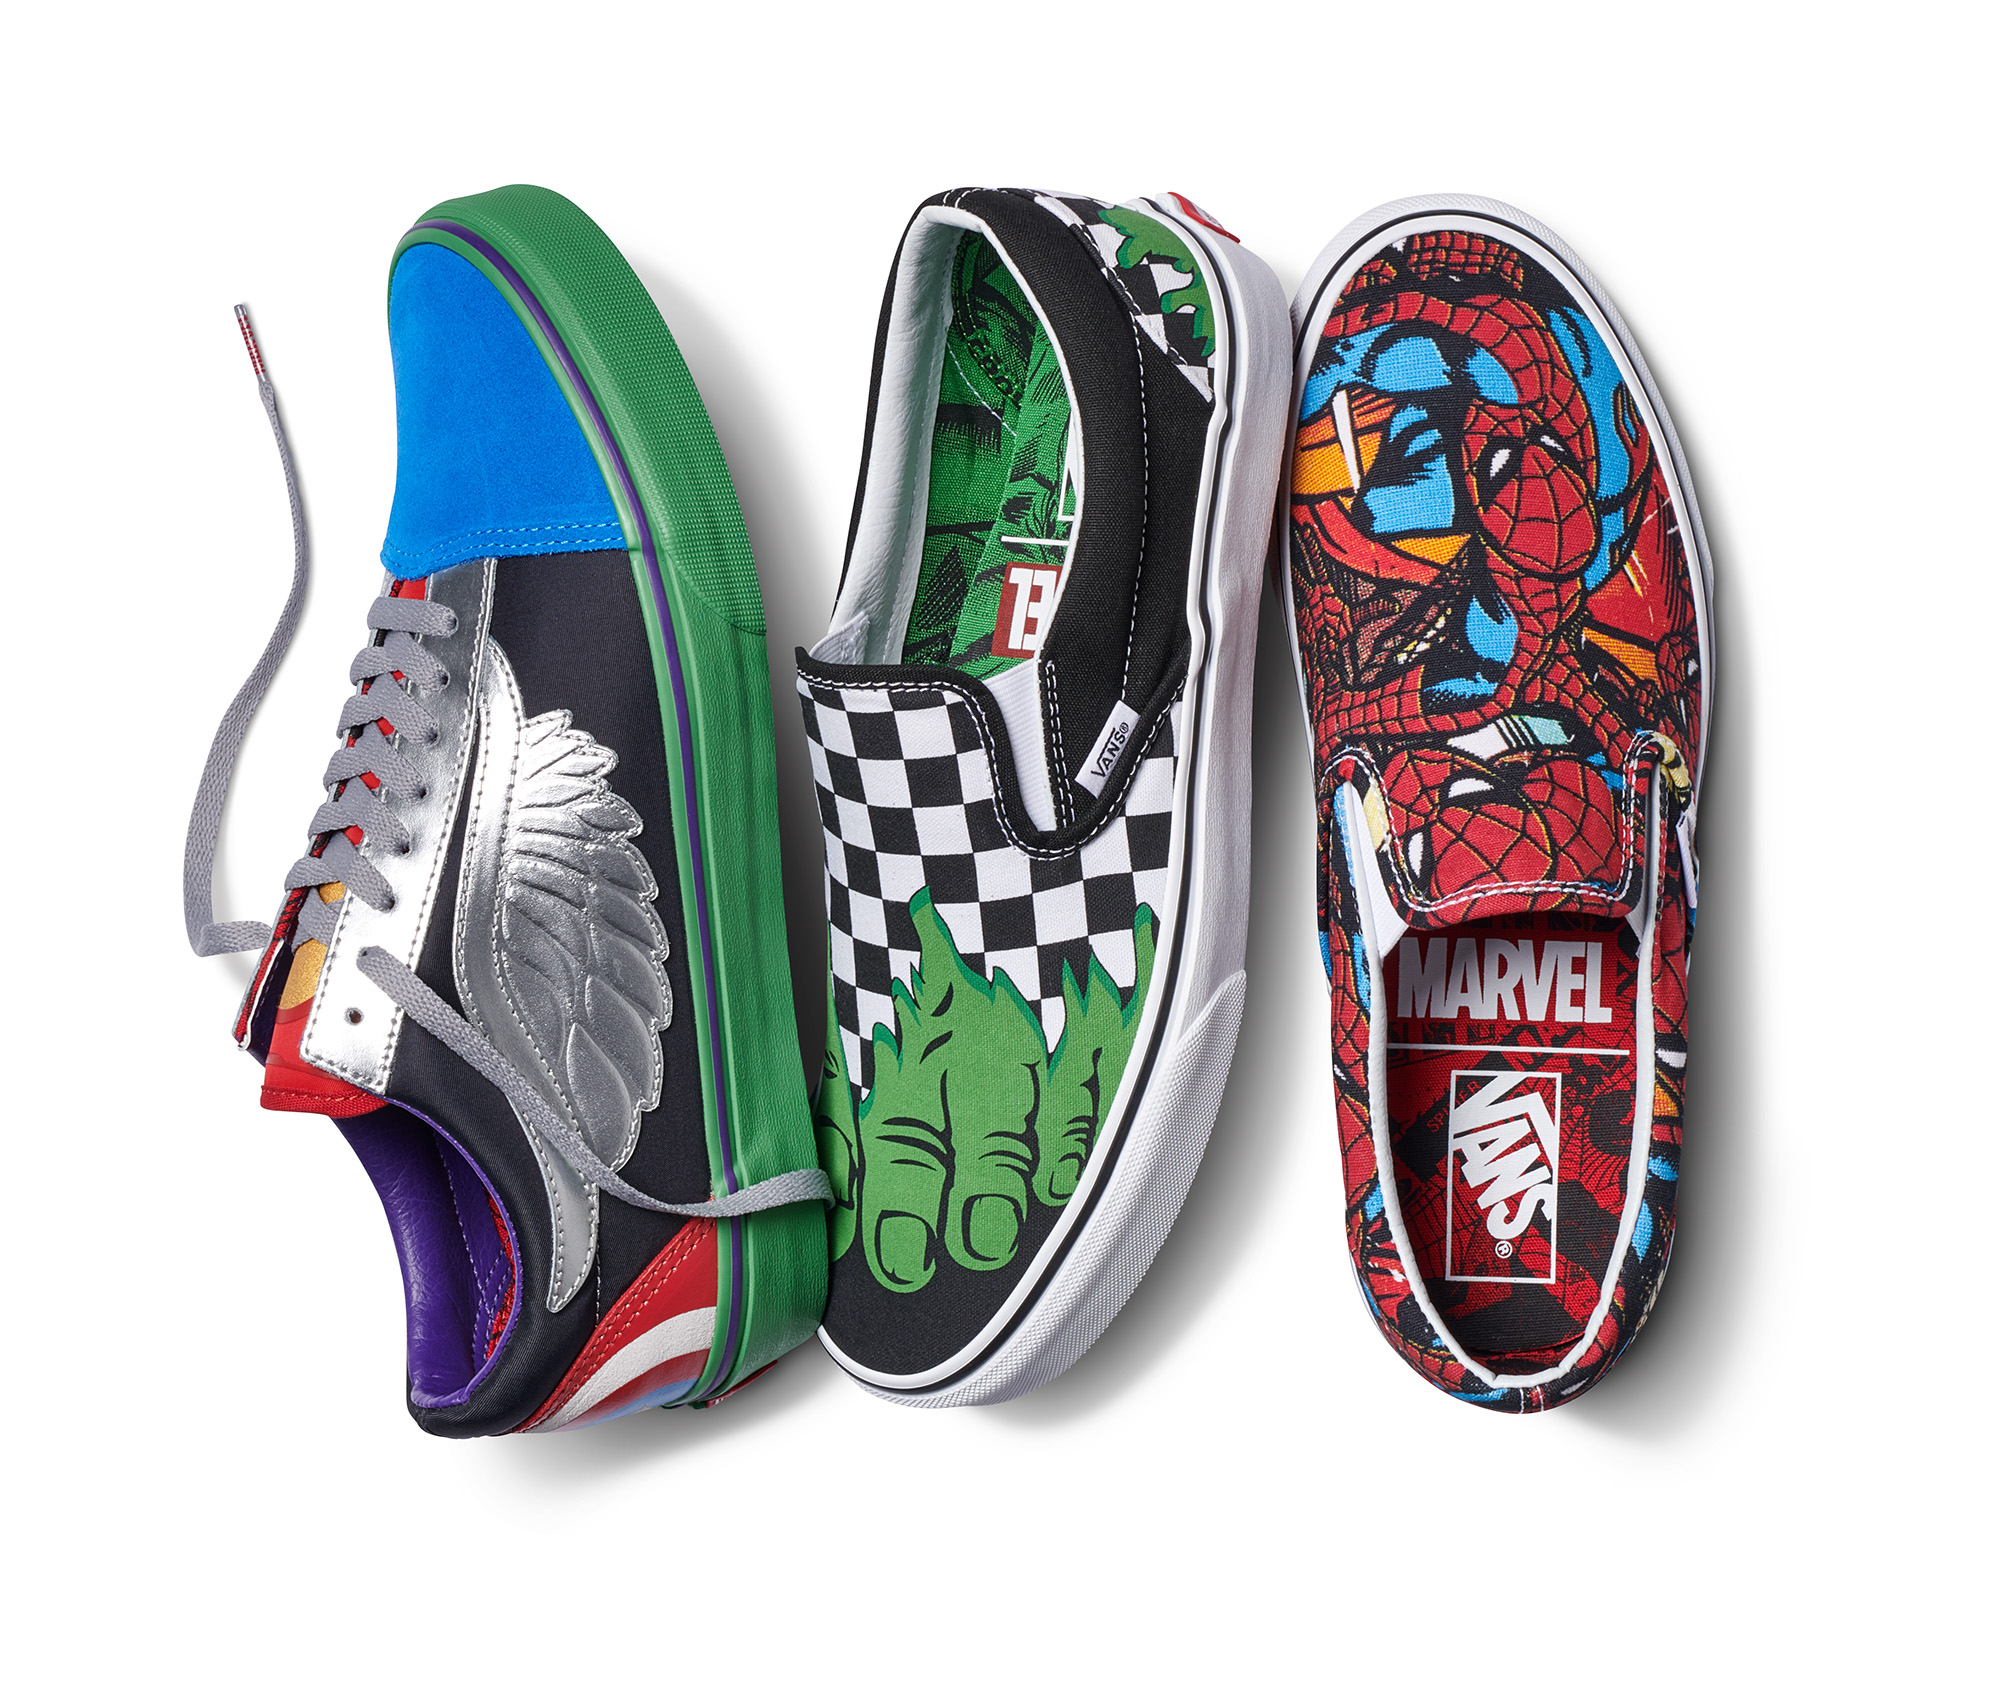 3b5a97e10ff4 Vans Joins Forces with Marvel to Assemble Epic Collaboration - Shoes    Accessories